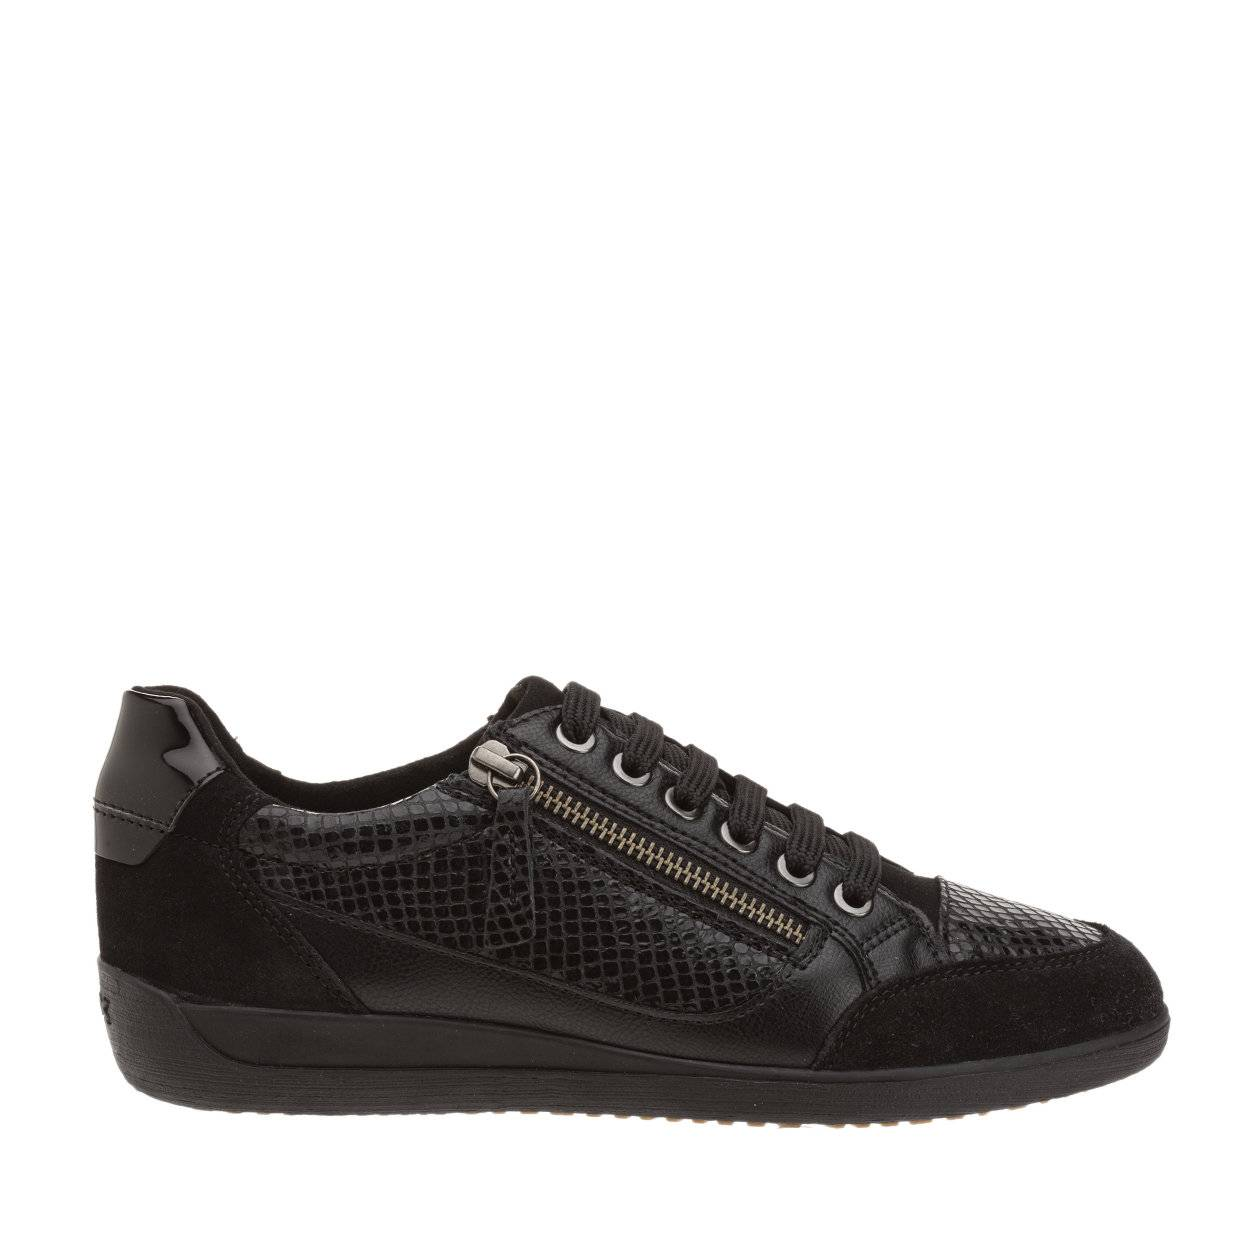 Geox Sneakers Myria in pelle stampata e suede nere